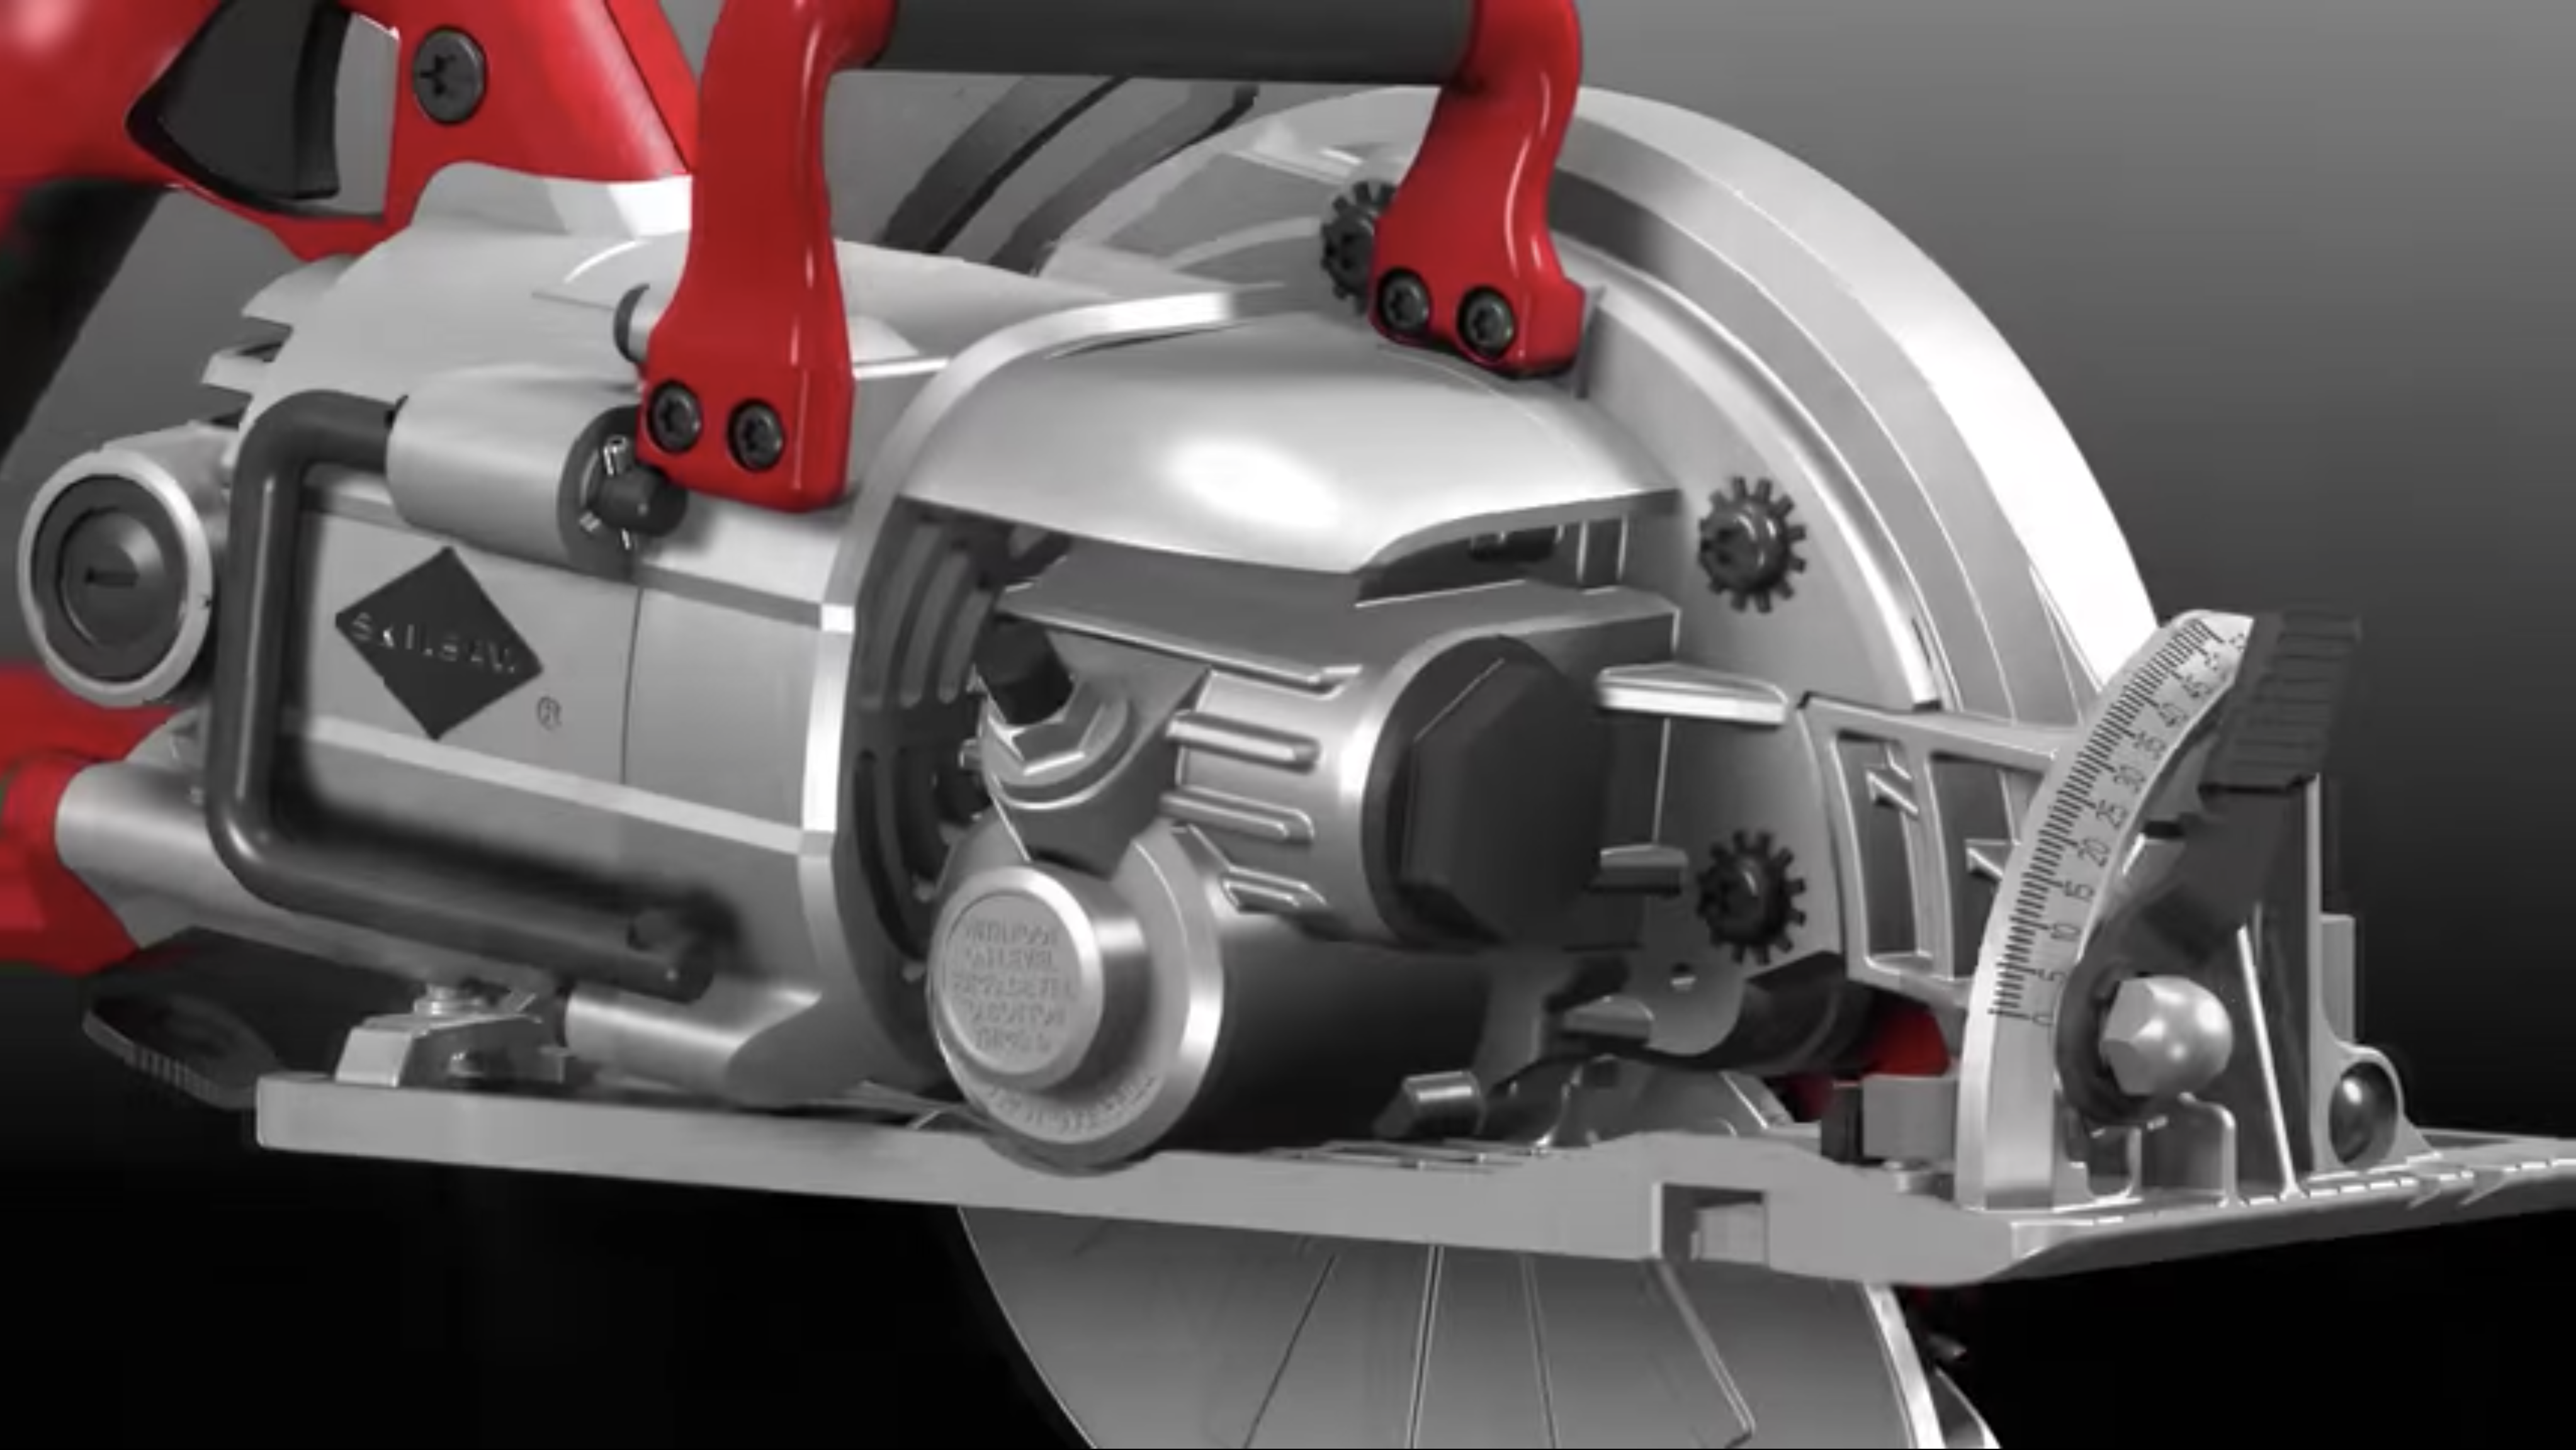 An Inside Look at the SkilSaw Worm Drive